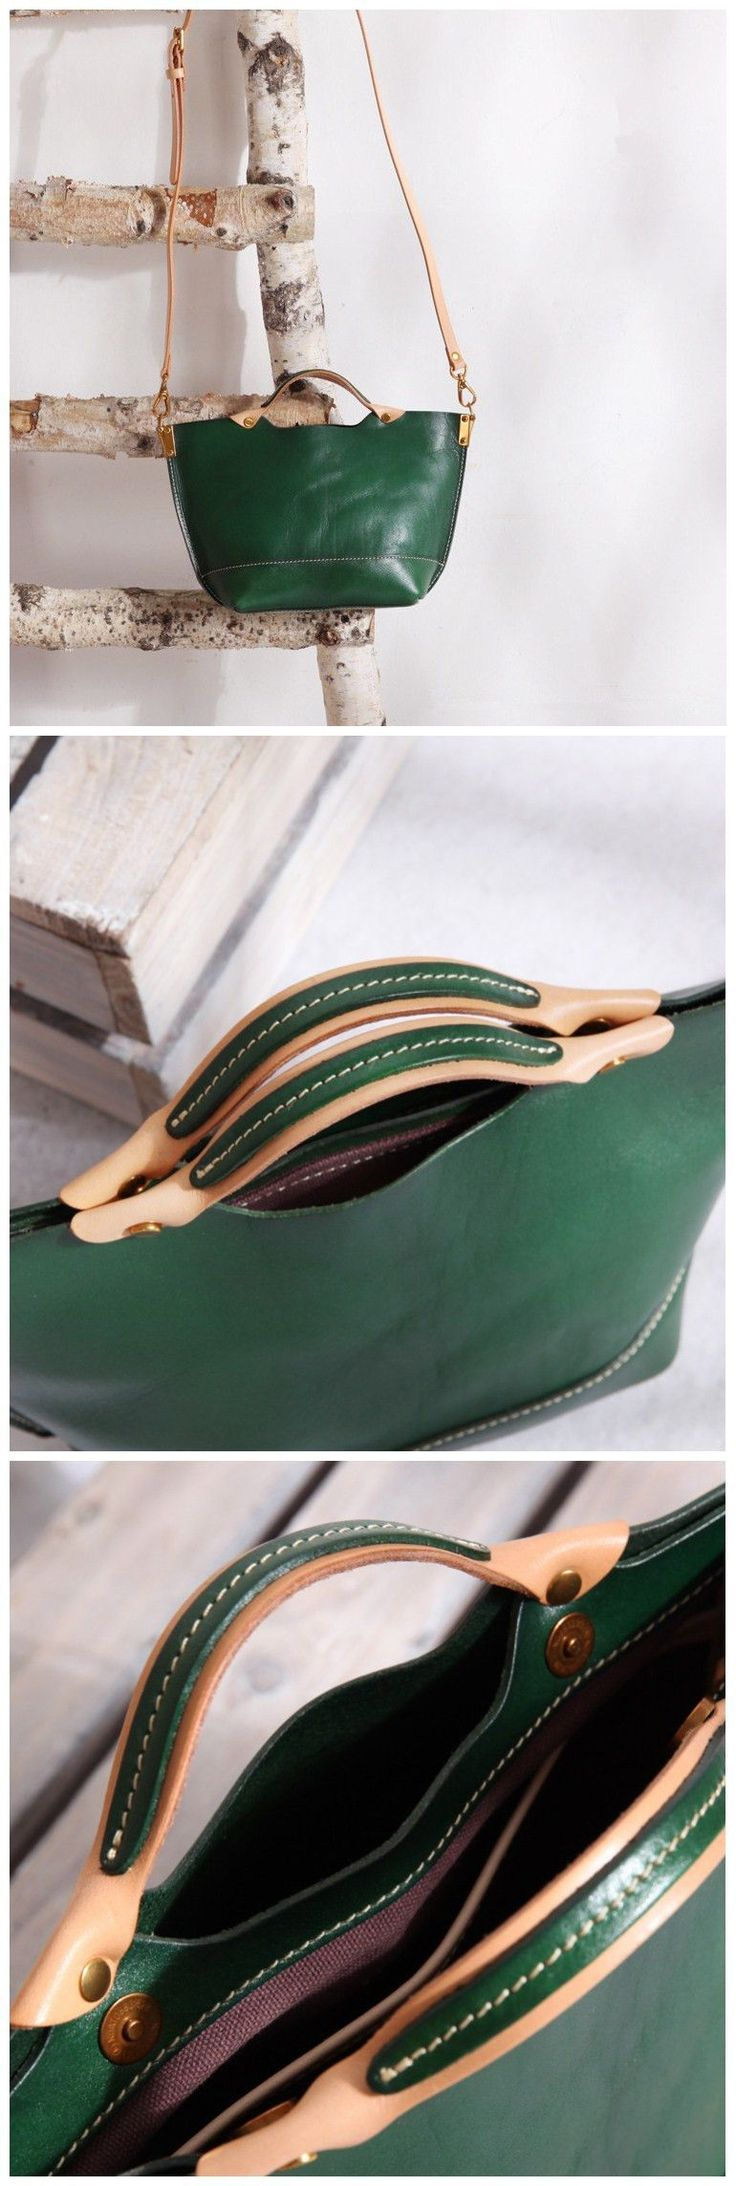 Ladies Handbags Full Grain Leather Handmade Cross body Bag Designer Handbags